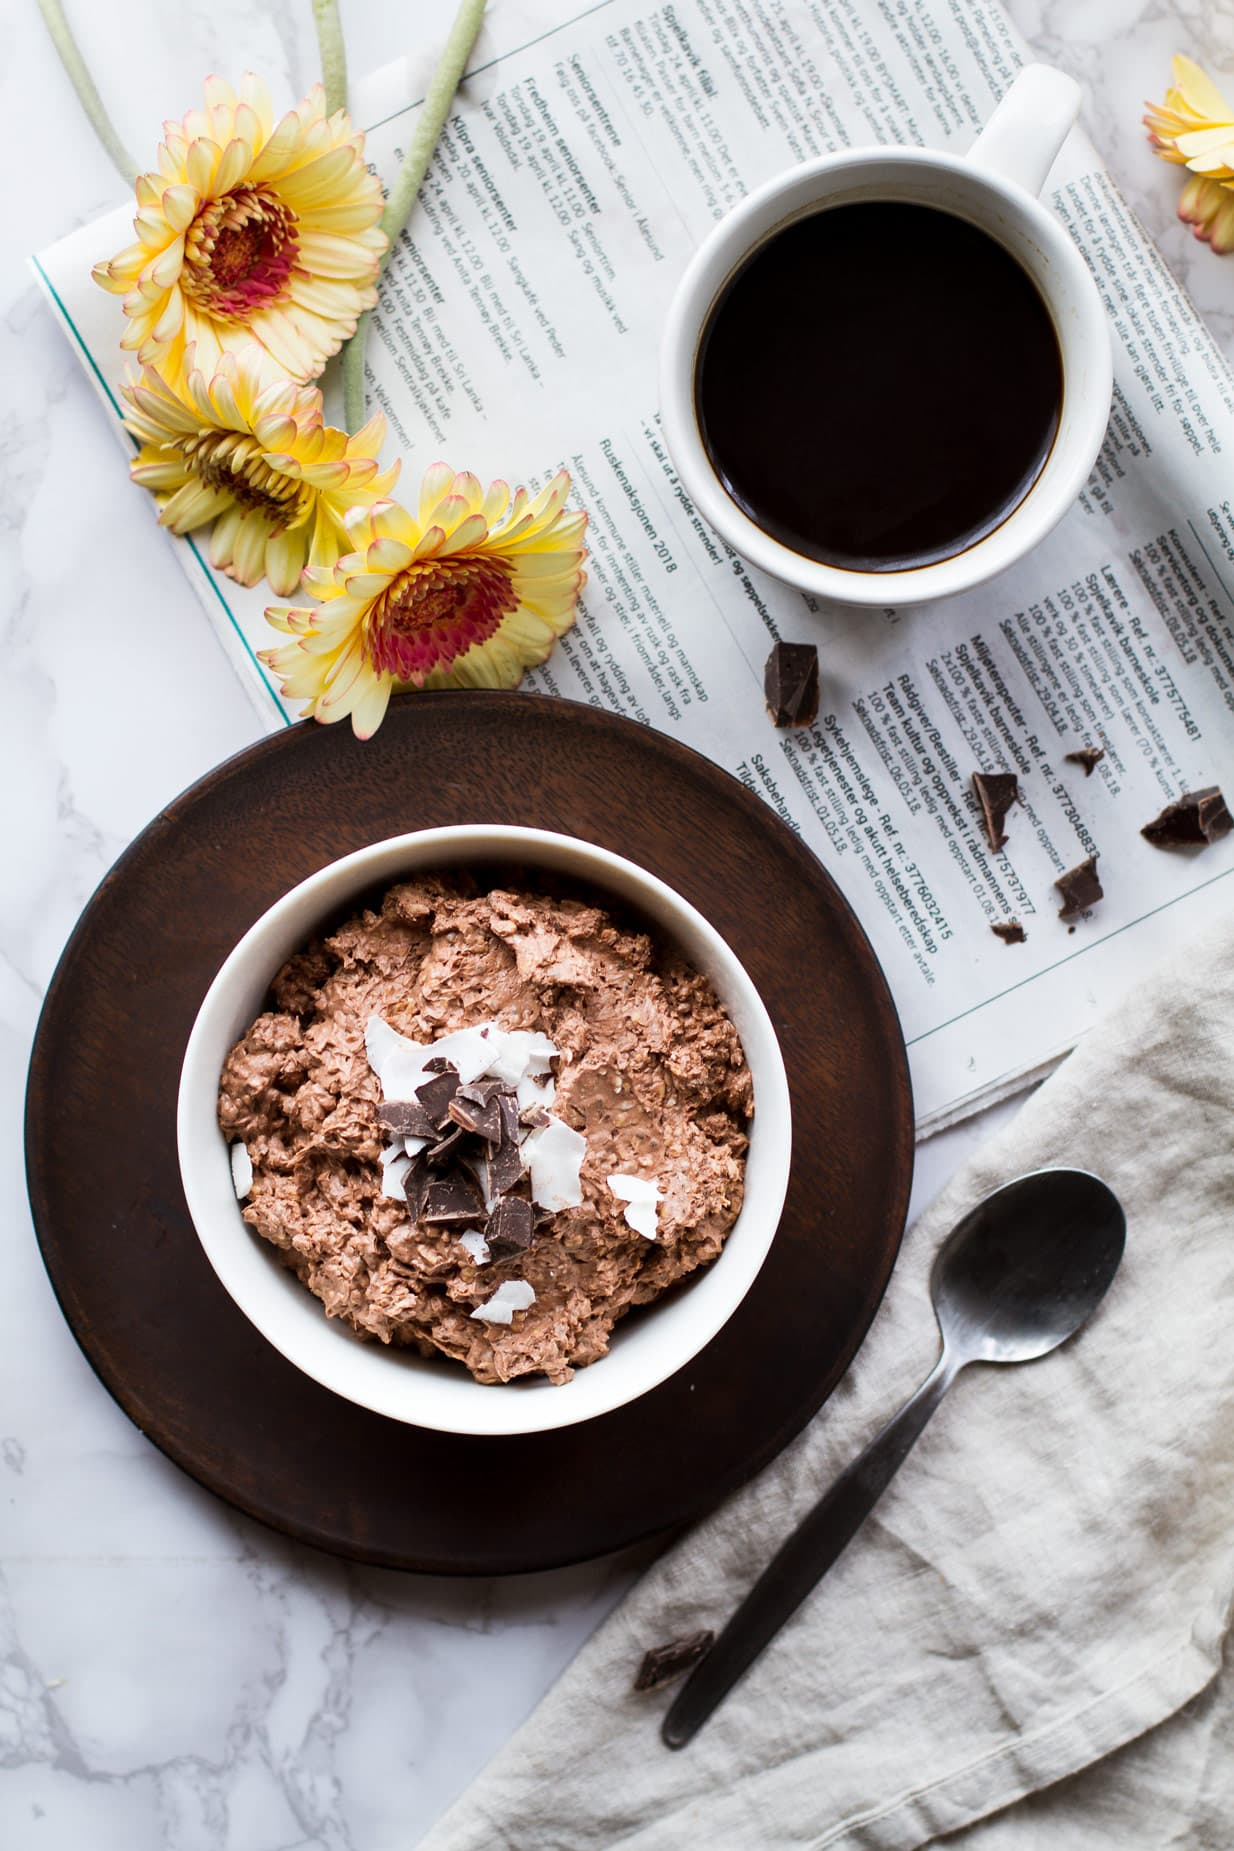 White bowl with chocolate coconut overnight oats on a wooden plate.